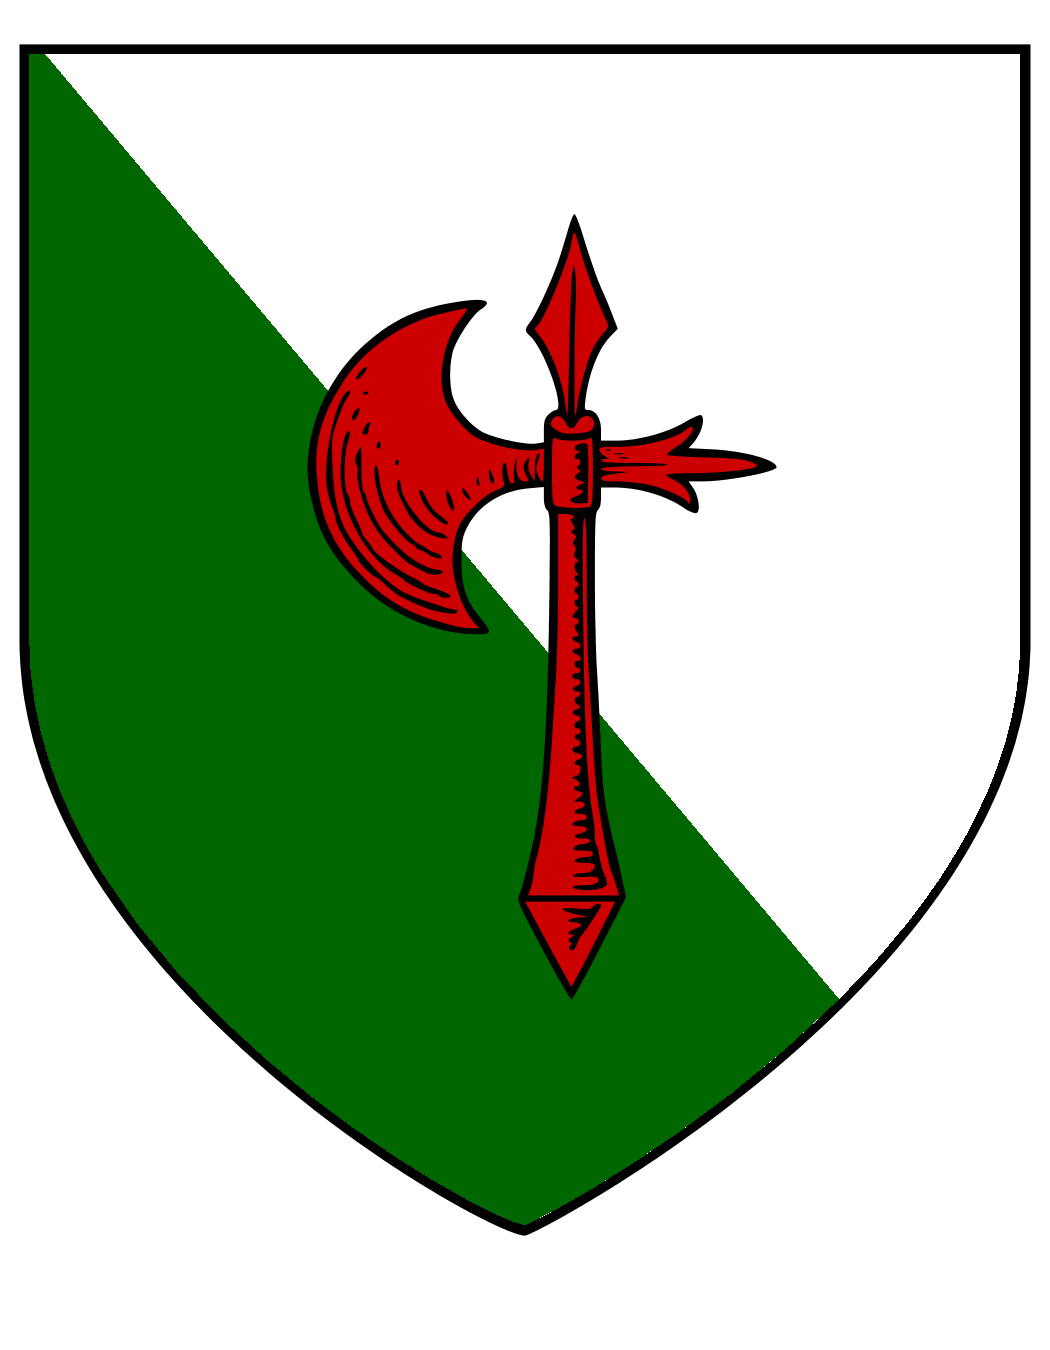 coat_of_arms_Dieter_von_Karlach.png